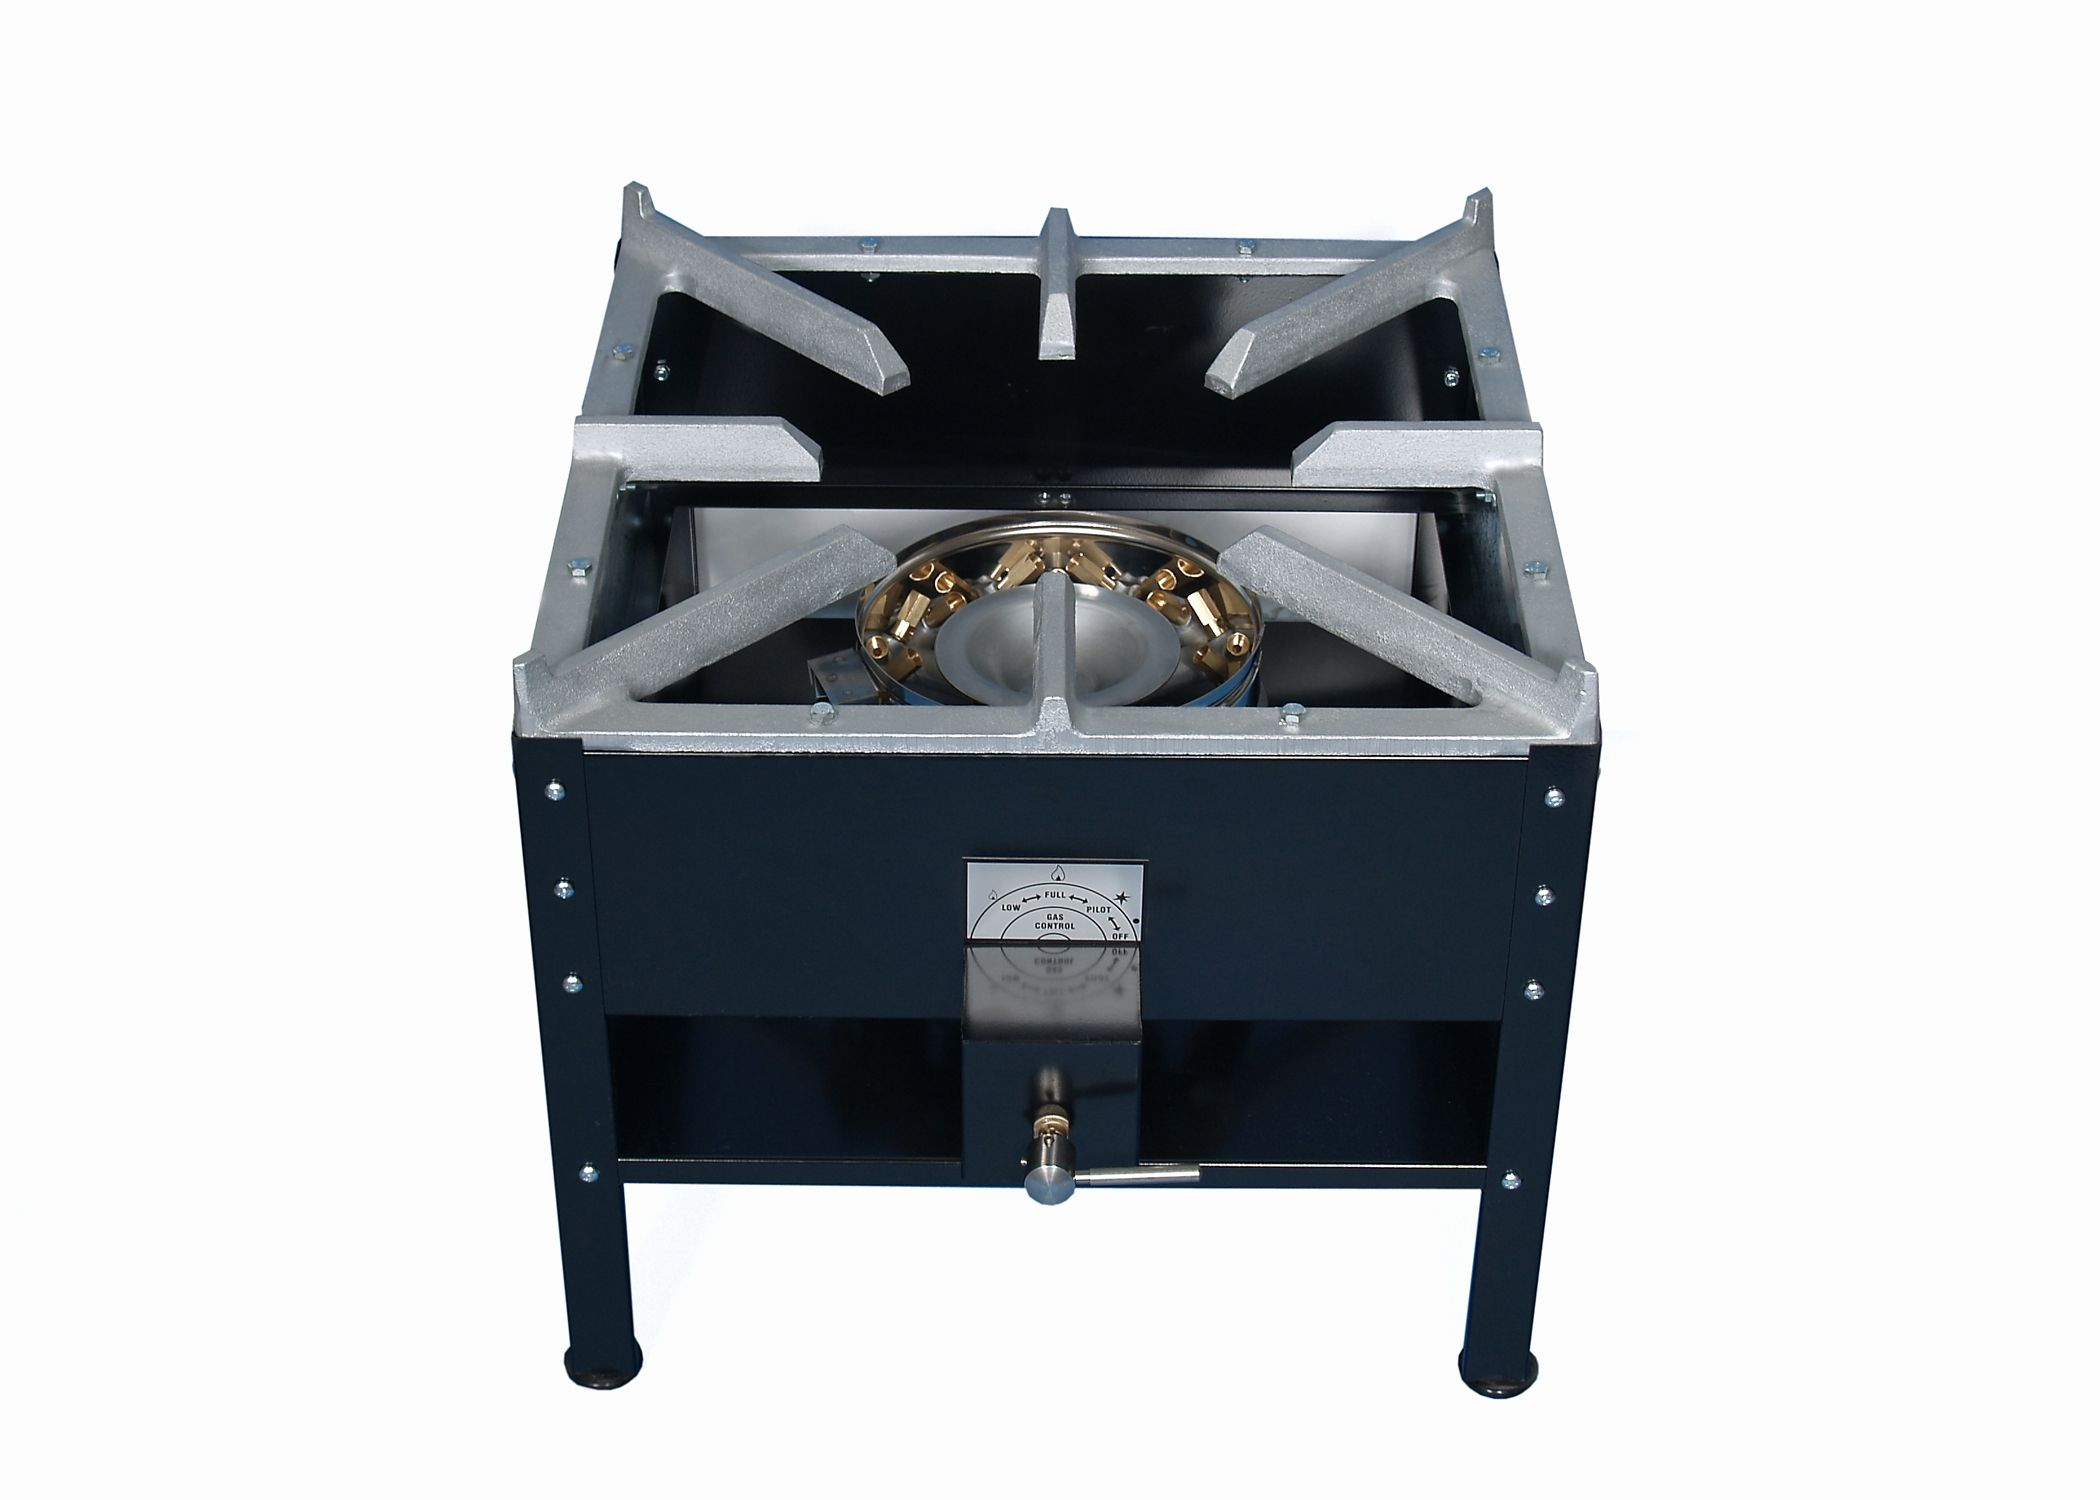 Stock Pot Cooker 600mm Square